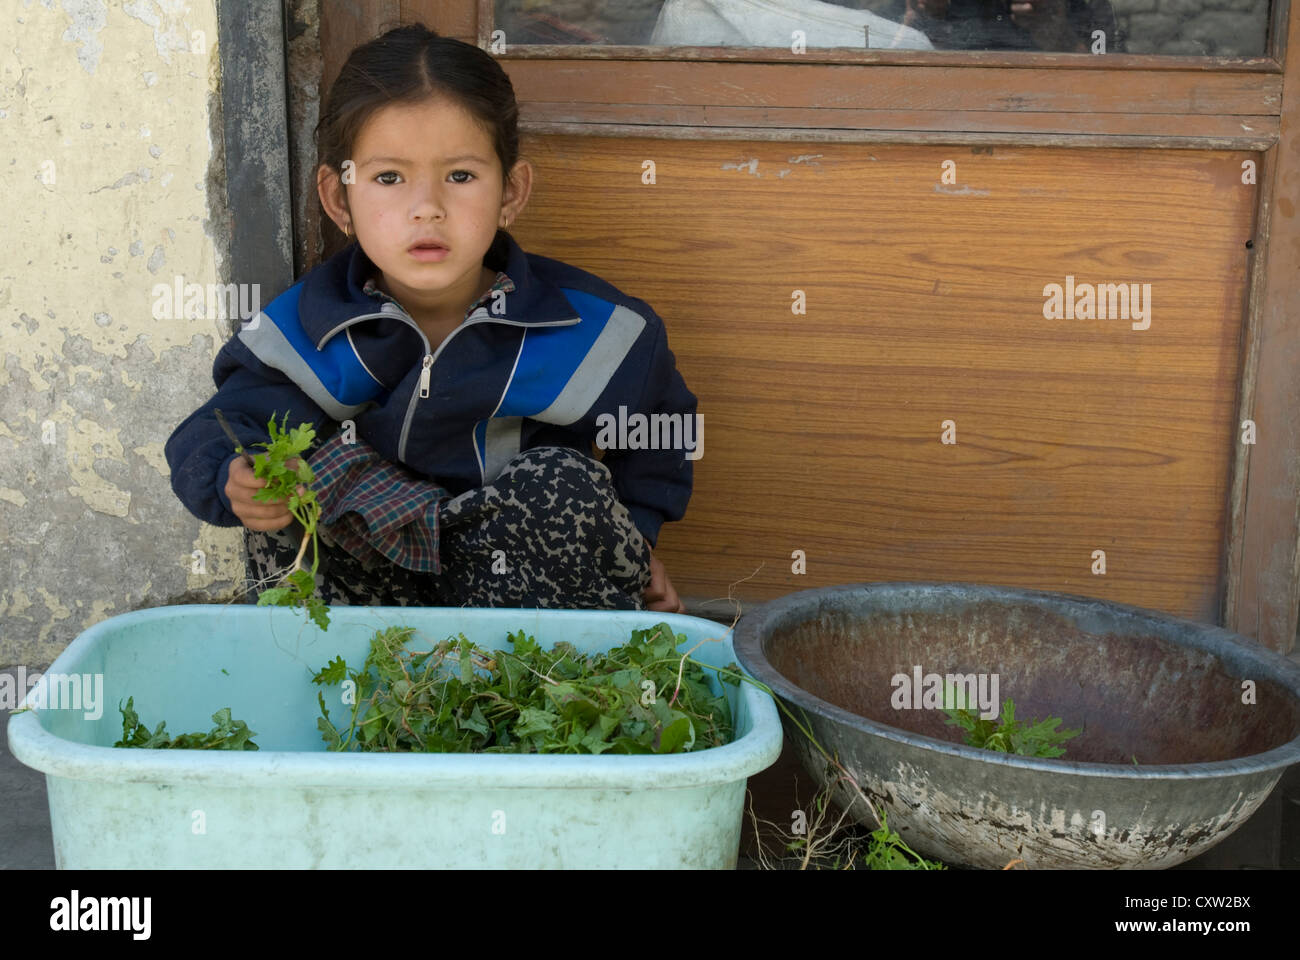 A girl pauses from cutting herbs in the Himalayan town of Keylong, India - Stock Image